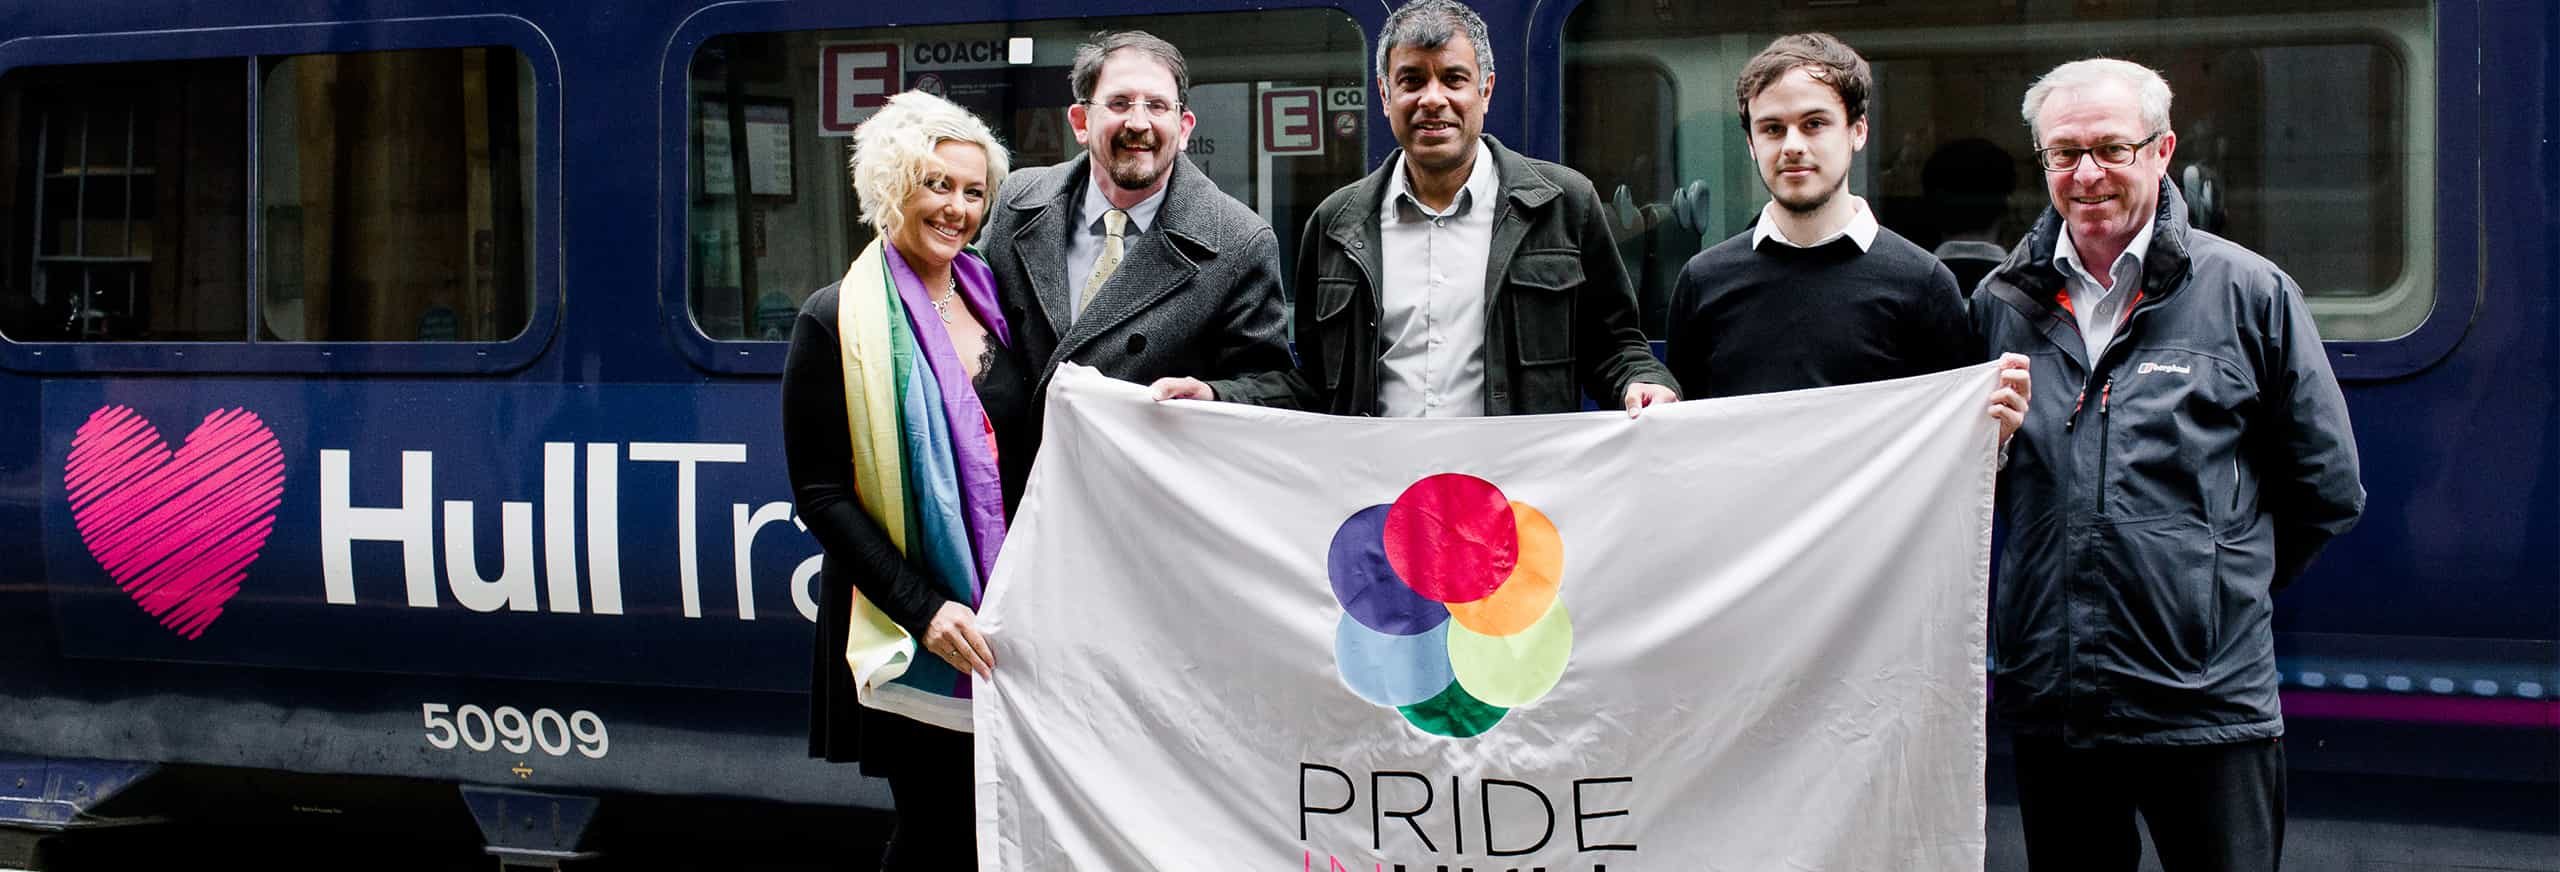 Hull Trains sponsors Pride